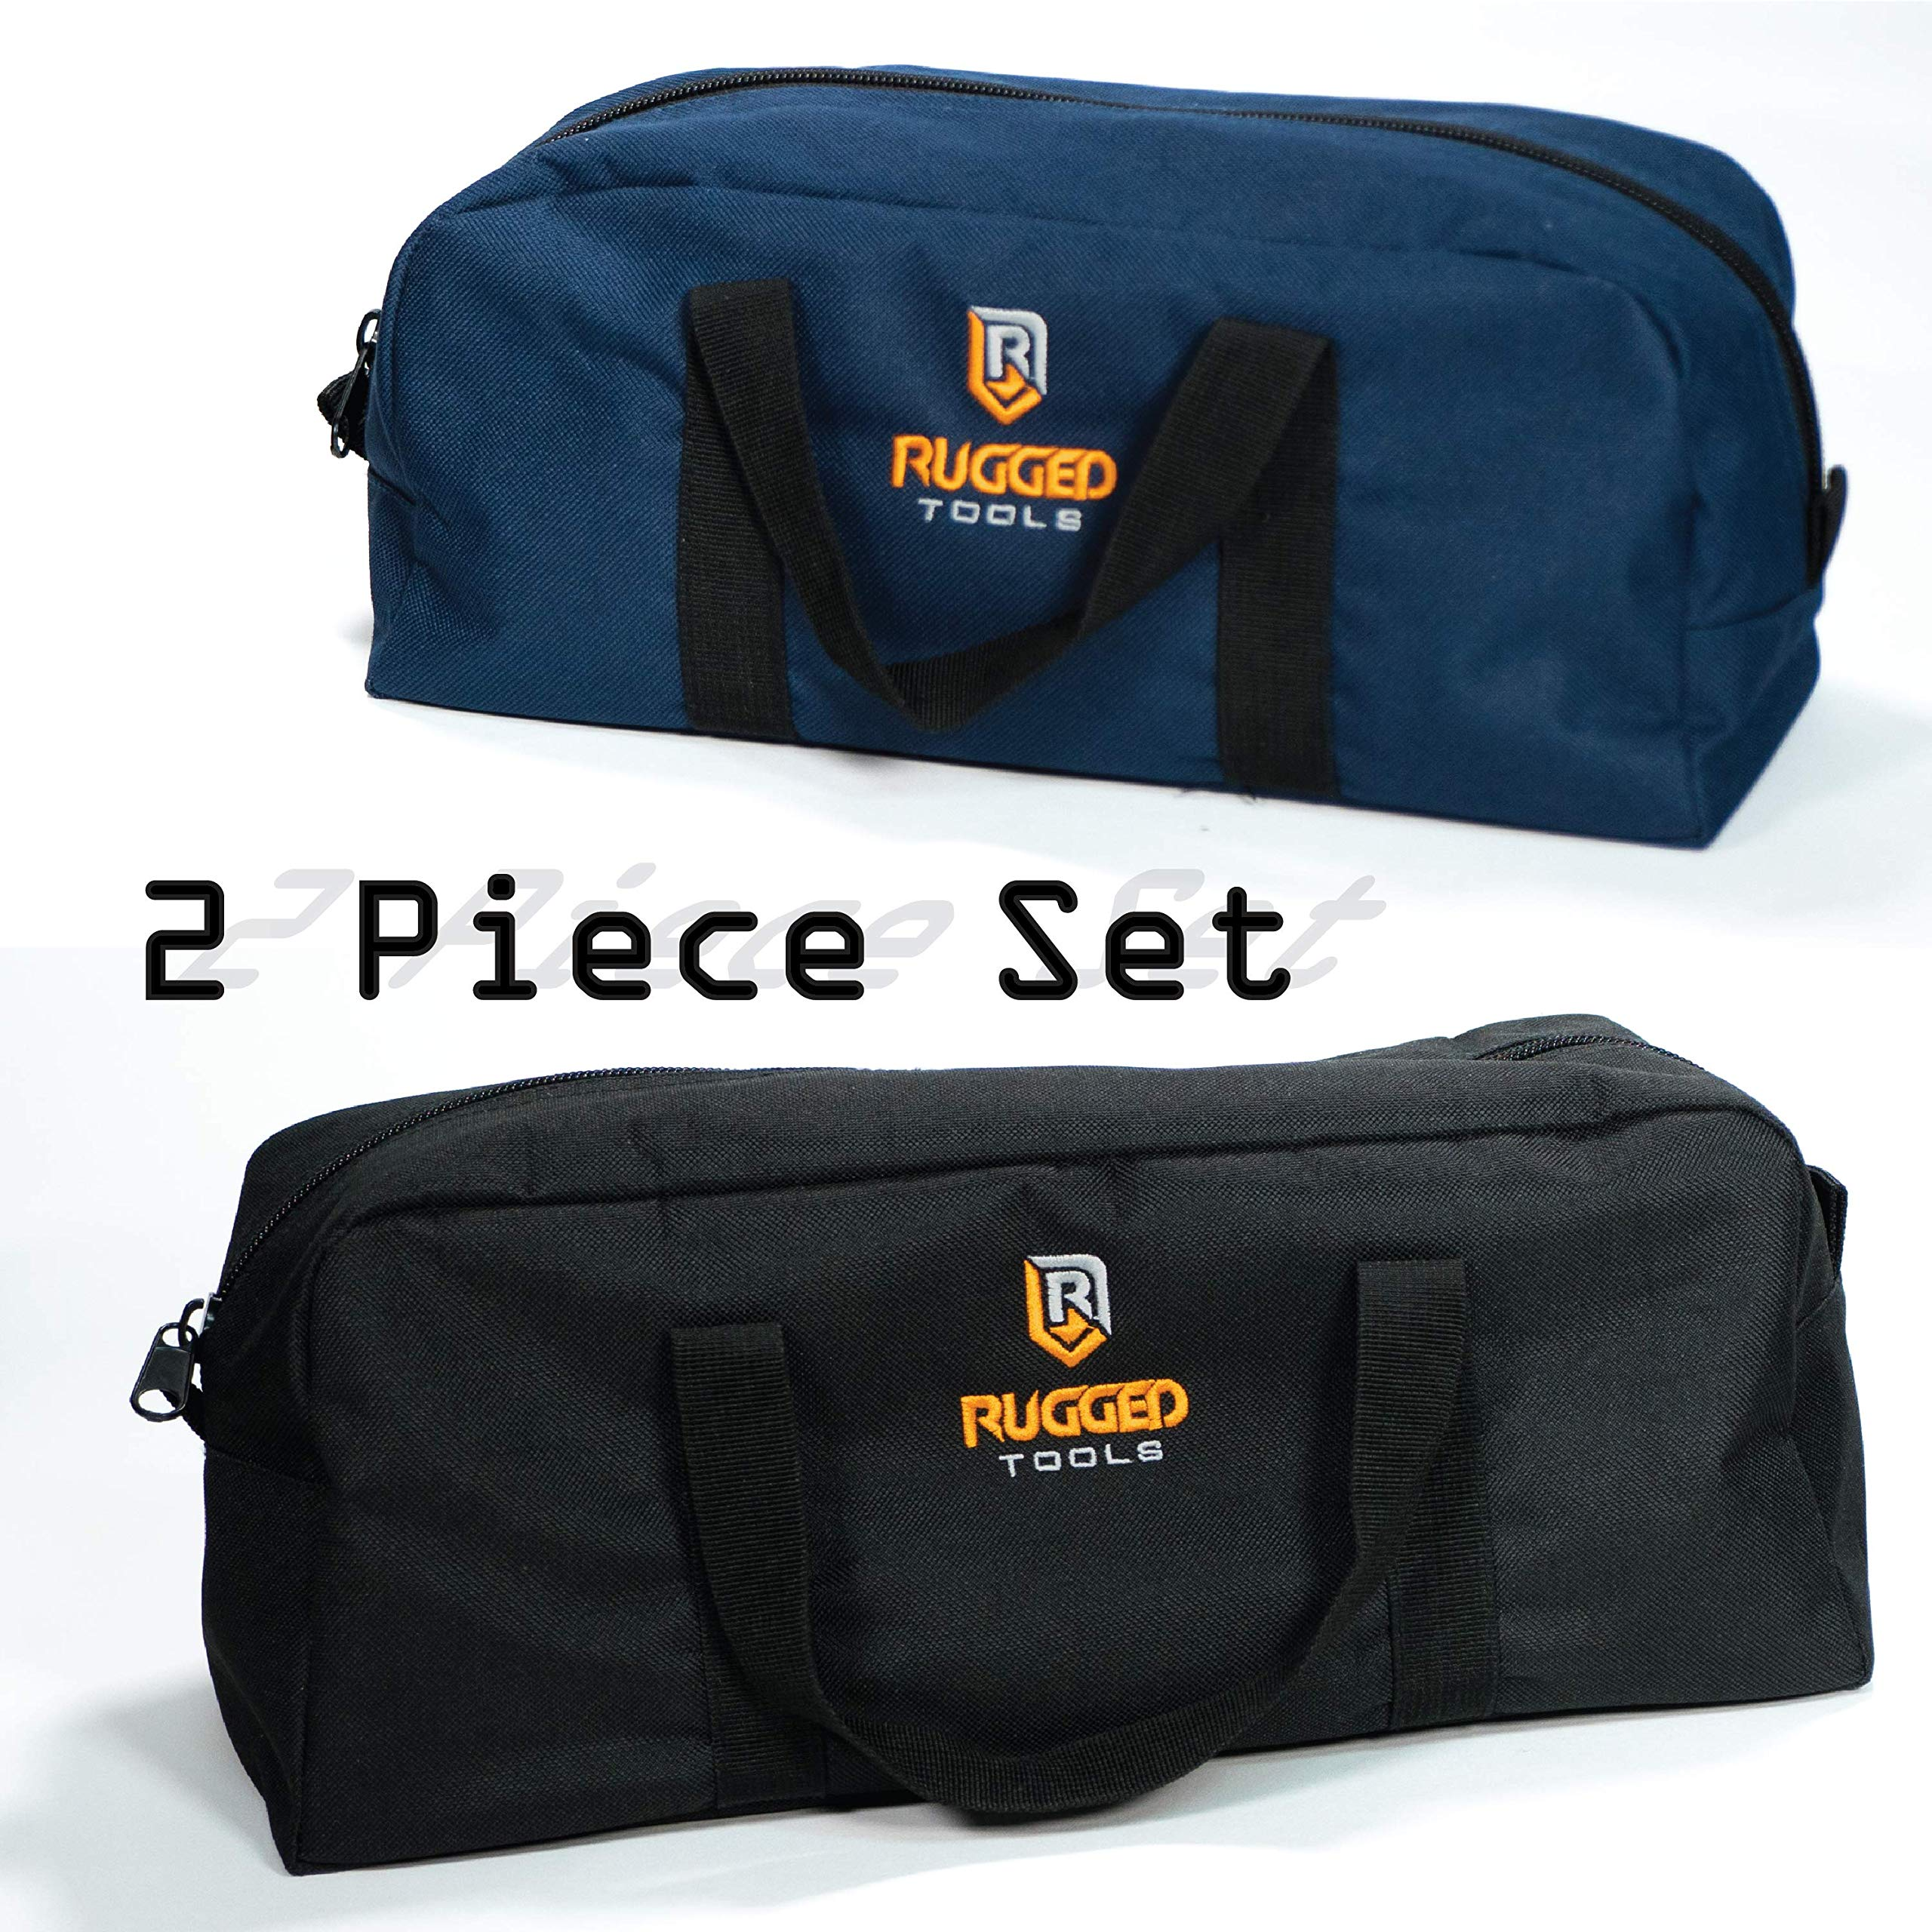 Rugged Tools Tool Bag Combo - Includes 1 Small & 1 Medium Toolbag - Organizer Tote Bags for Electrician, Plumbing, Gardening, HVAC & More